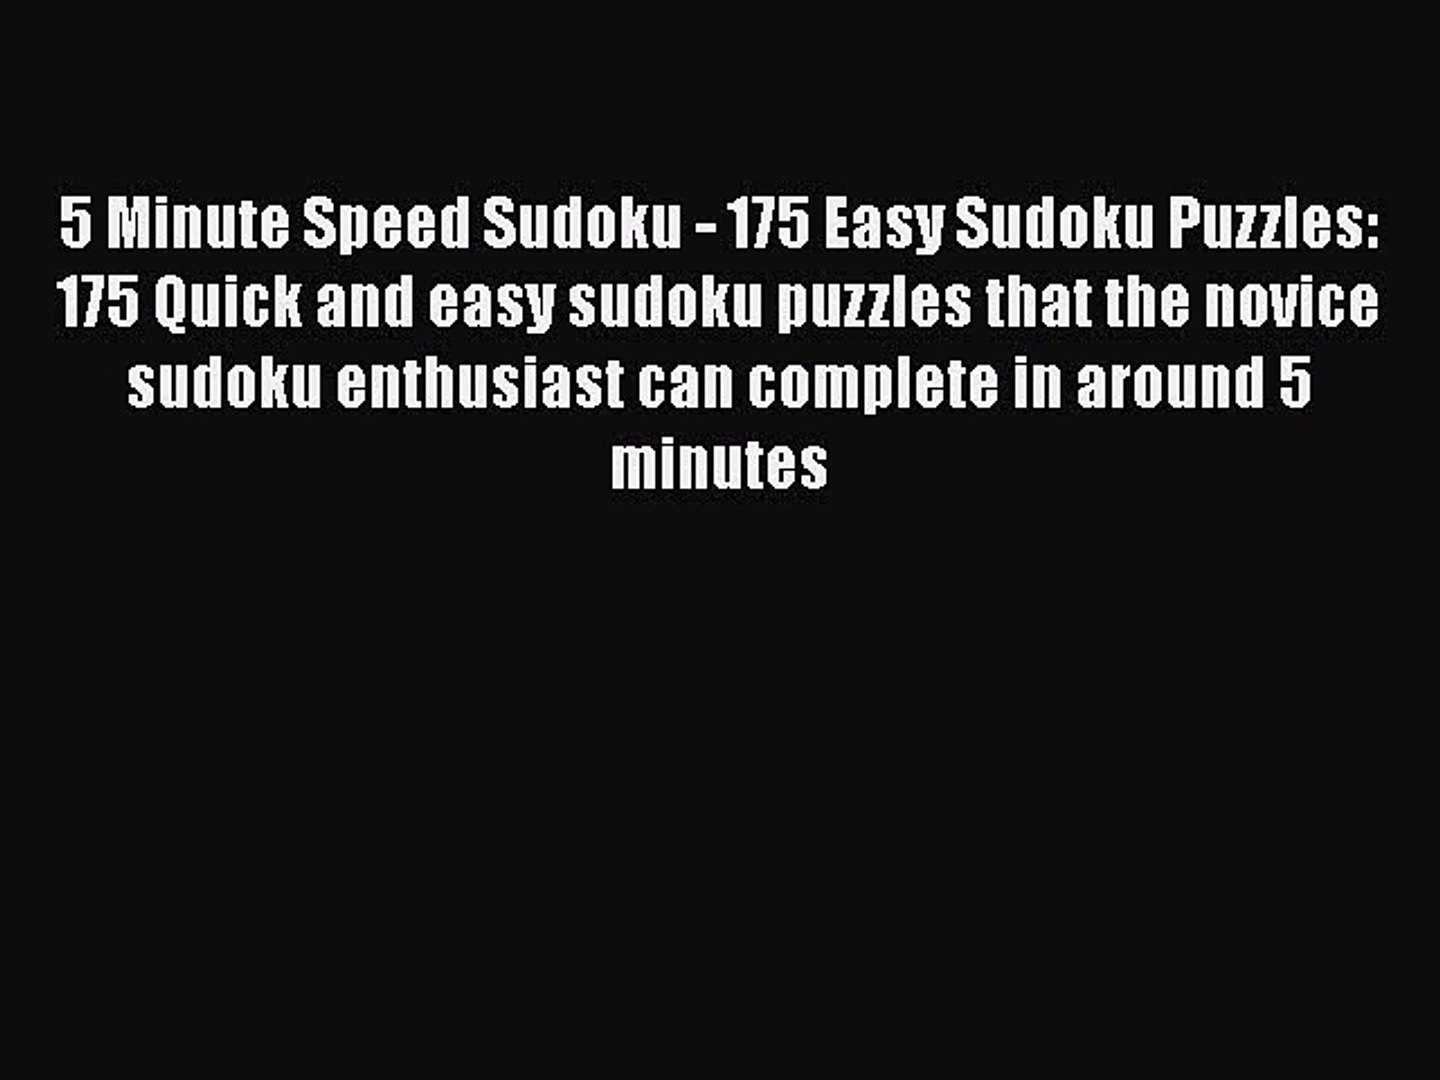 Read 5 Minute Speed Sudoku - 175 Easy Sudoku Puzzles: 175 Quick and easy sudoku puzzles that